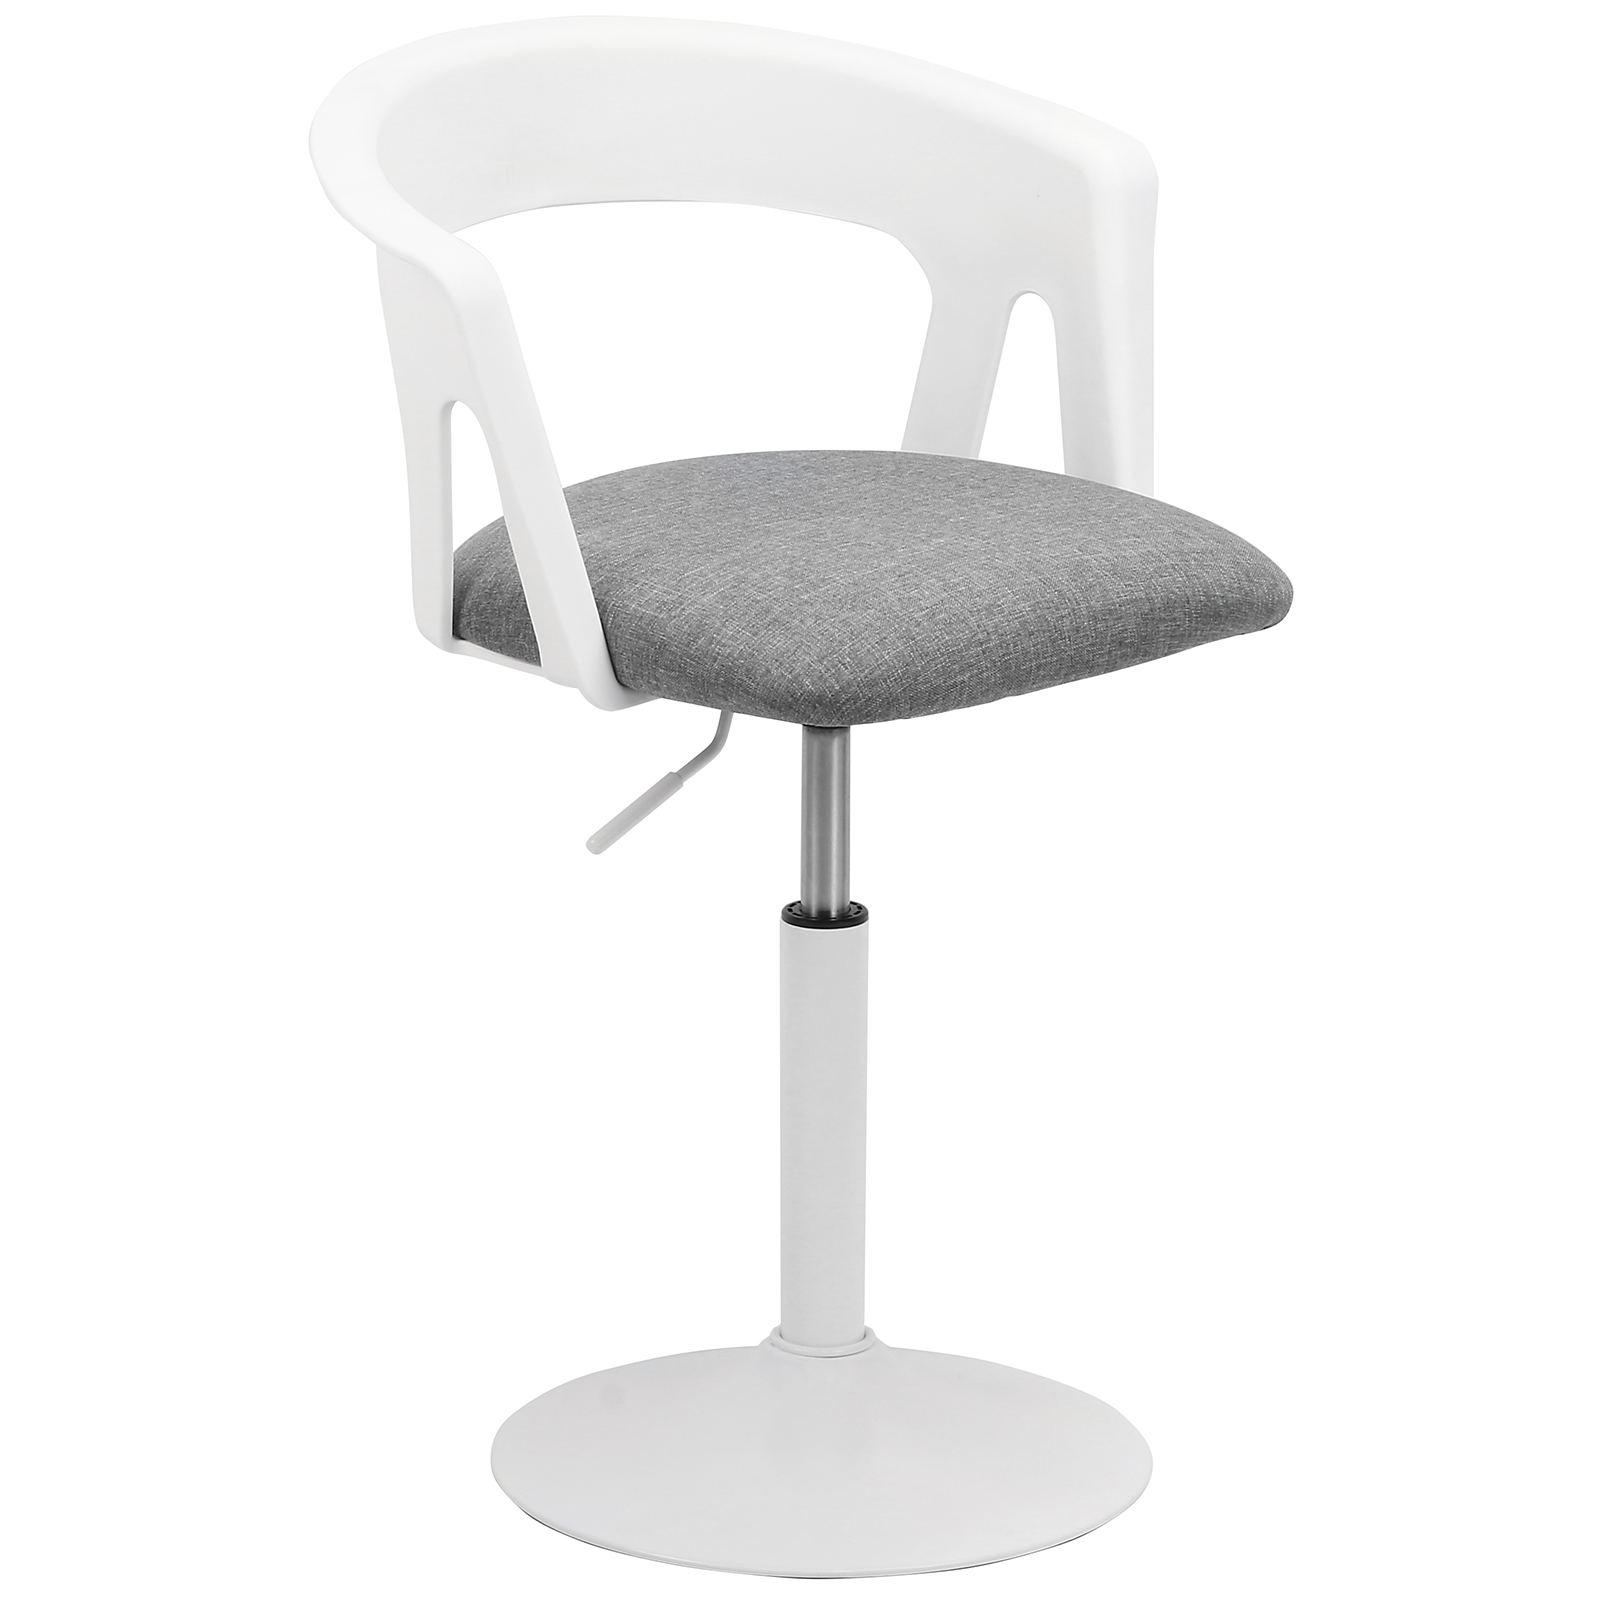 White Swivel Desk Chair Hartleys White Grey Fabric Swivel Chair Home Office